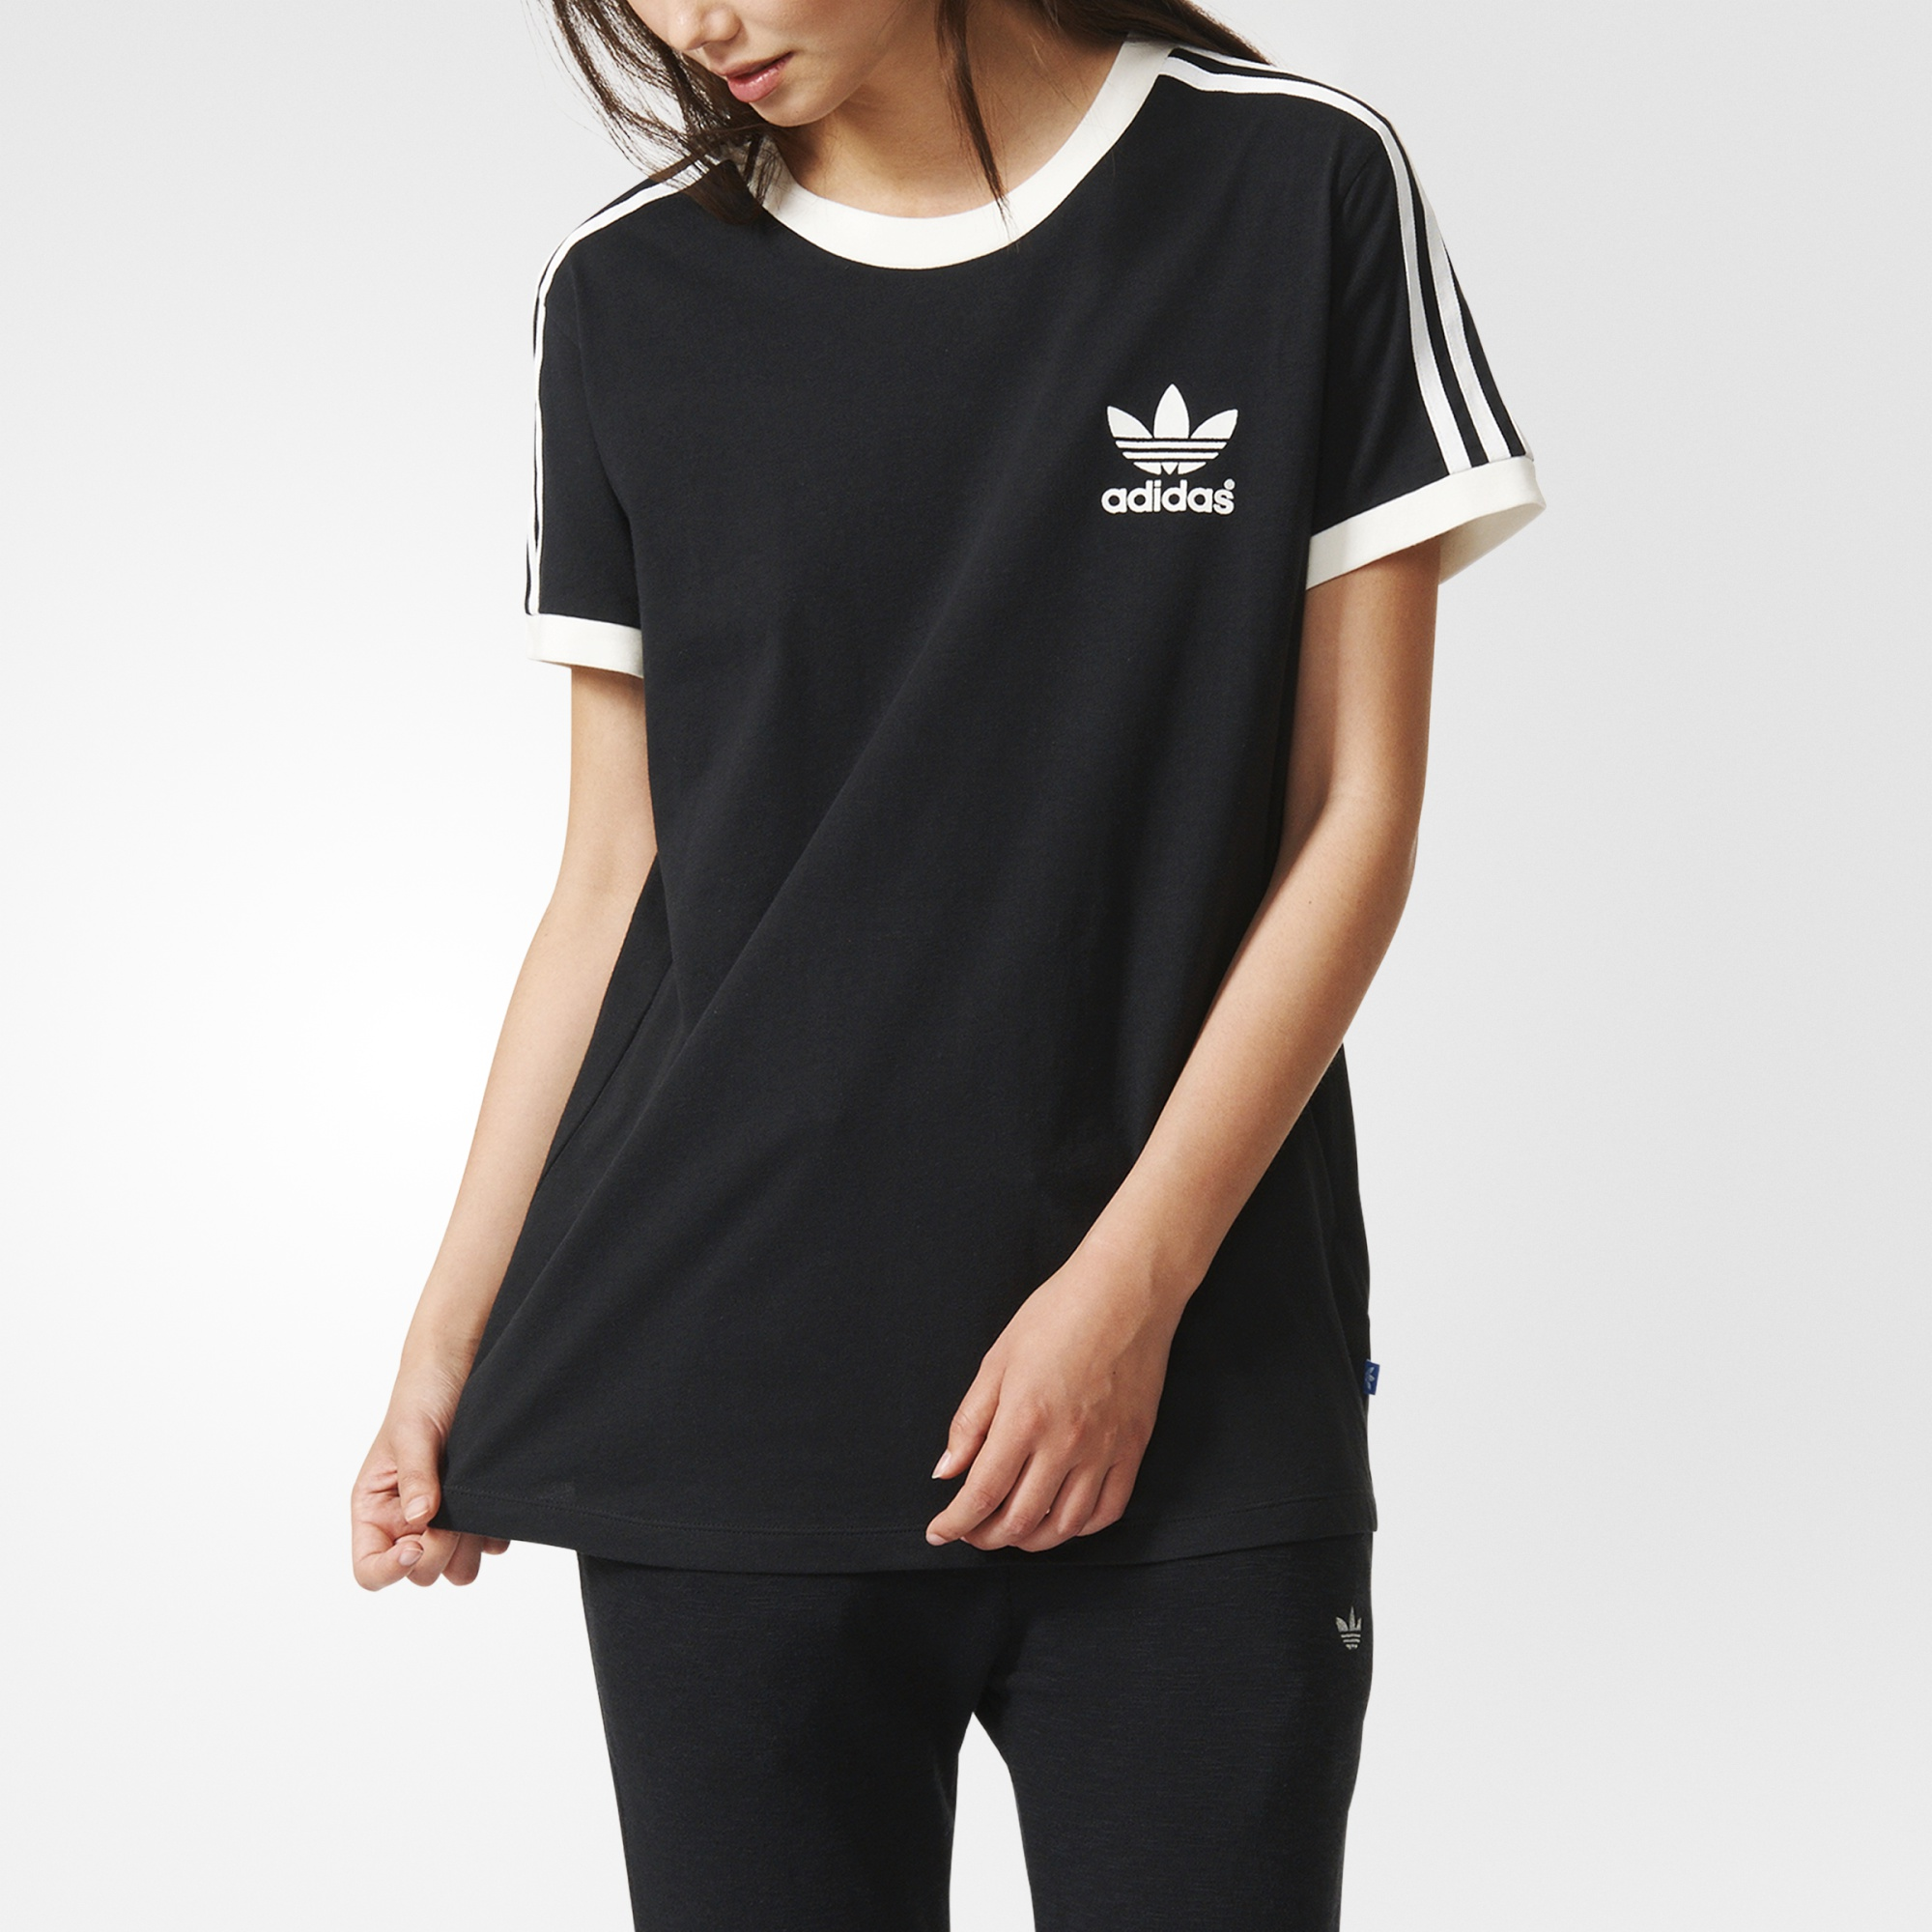 adidas 3 stripes tee black adidas uk 25 adidas sold on adidas co uk. Black Bedroom Furniture Sets. Home Design Ideas